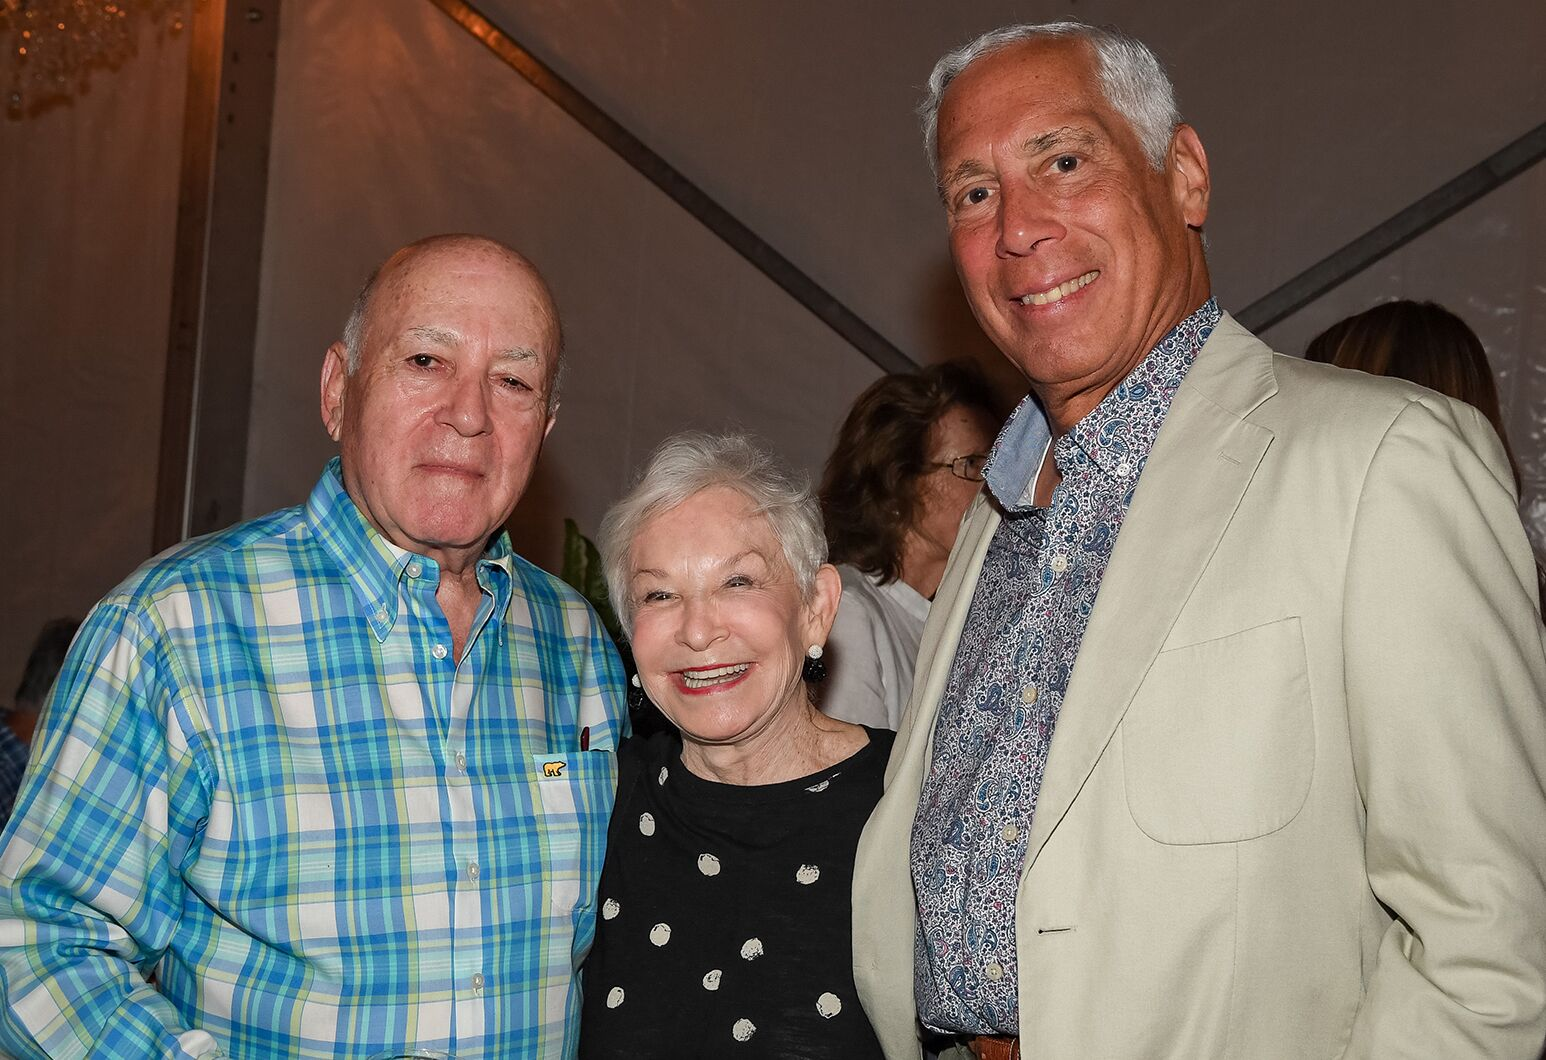 From left: Benefactors Leonard and Susan Feinstein with Michael Epstein, chair of the Northwell Health Board of Trustees.